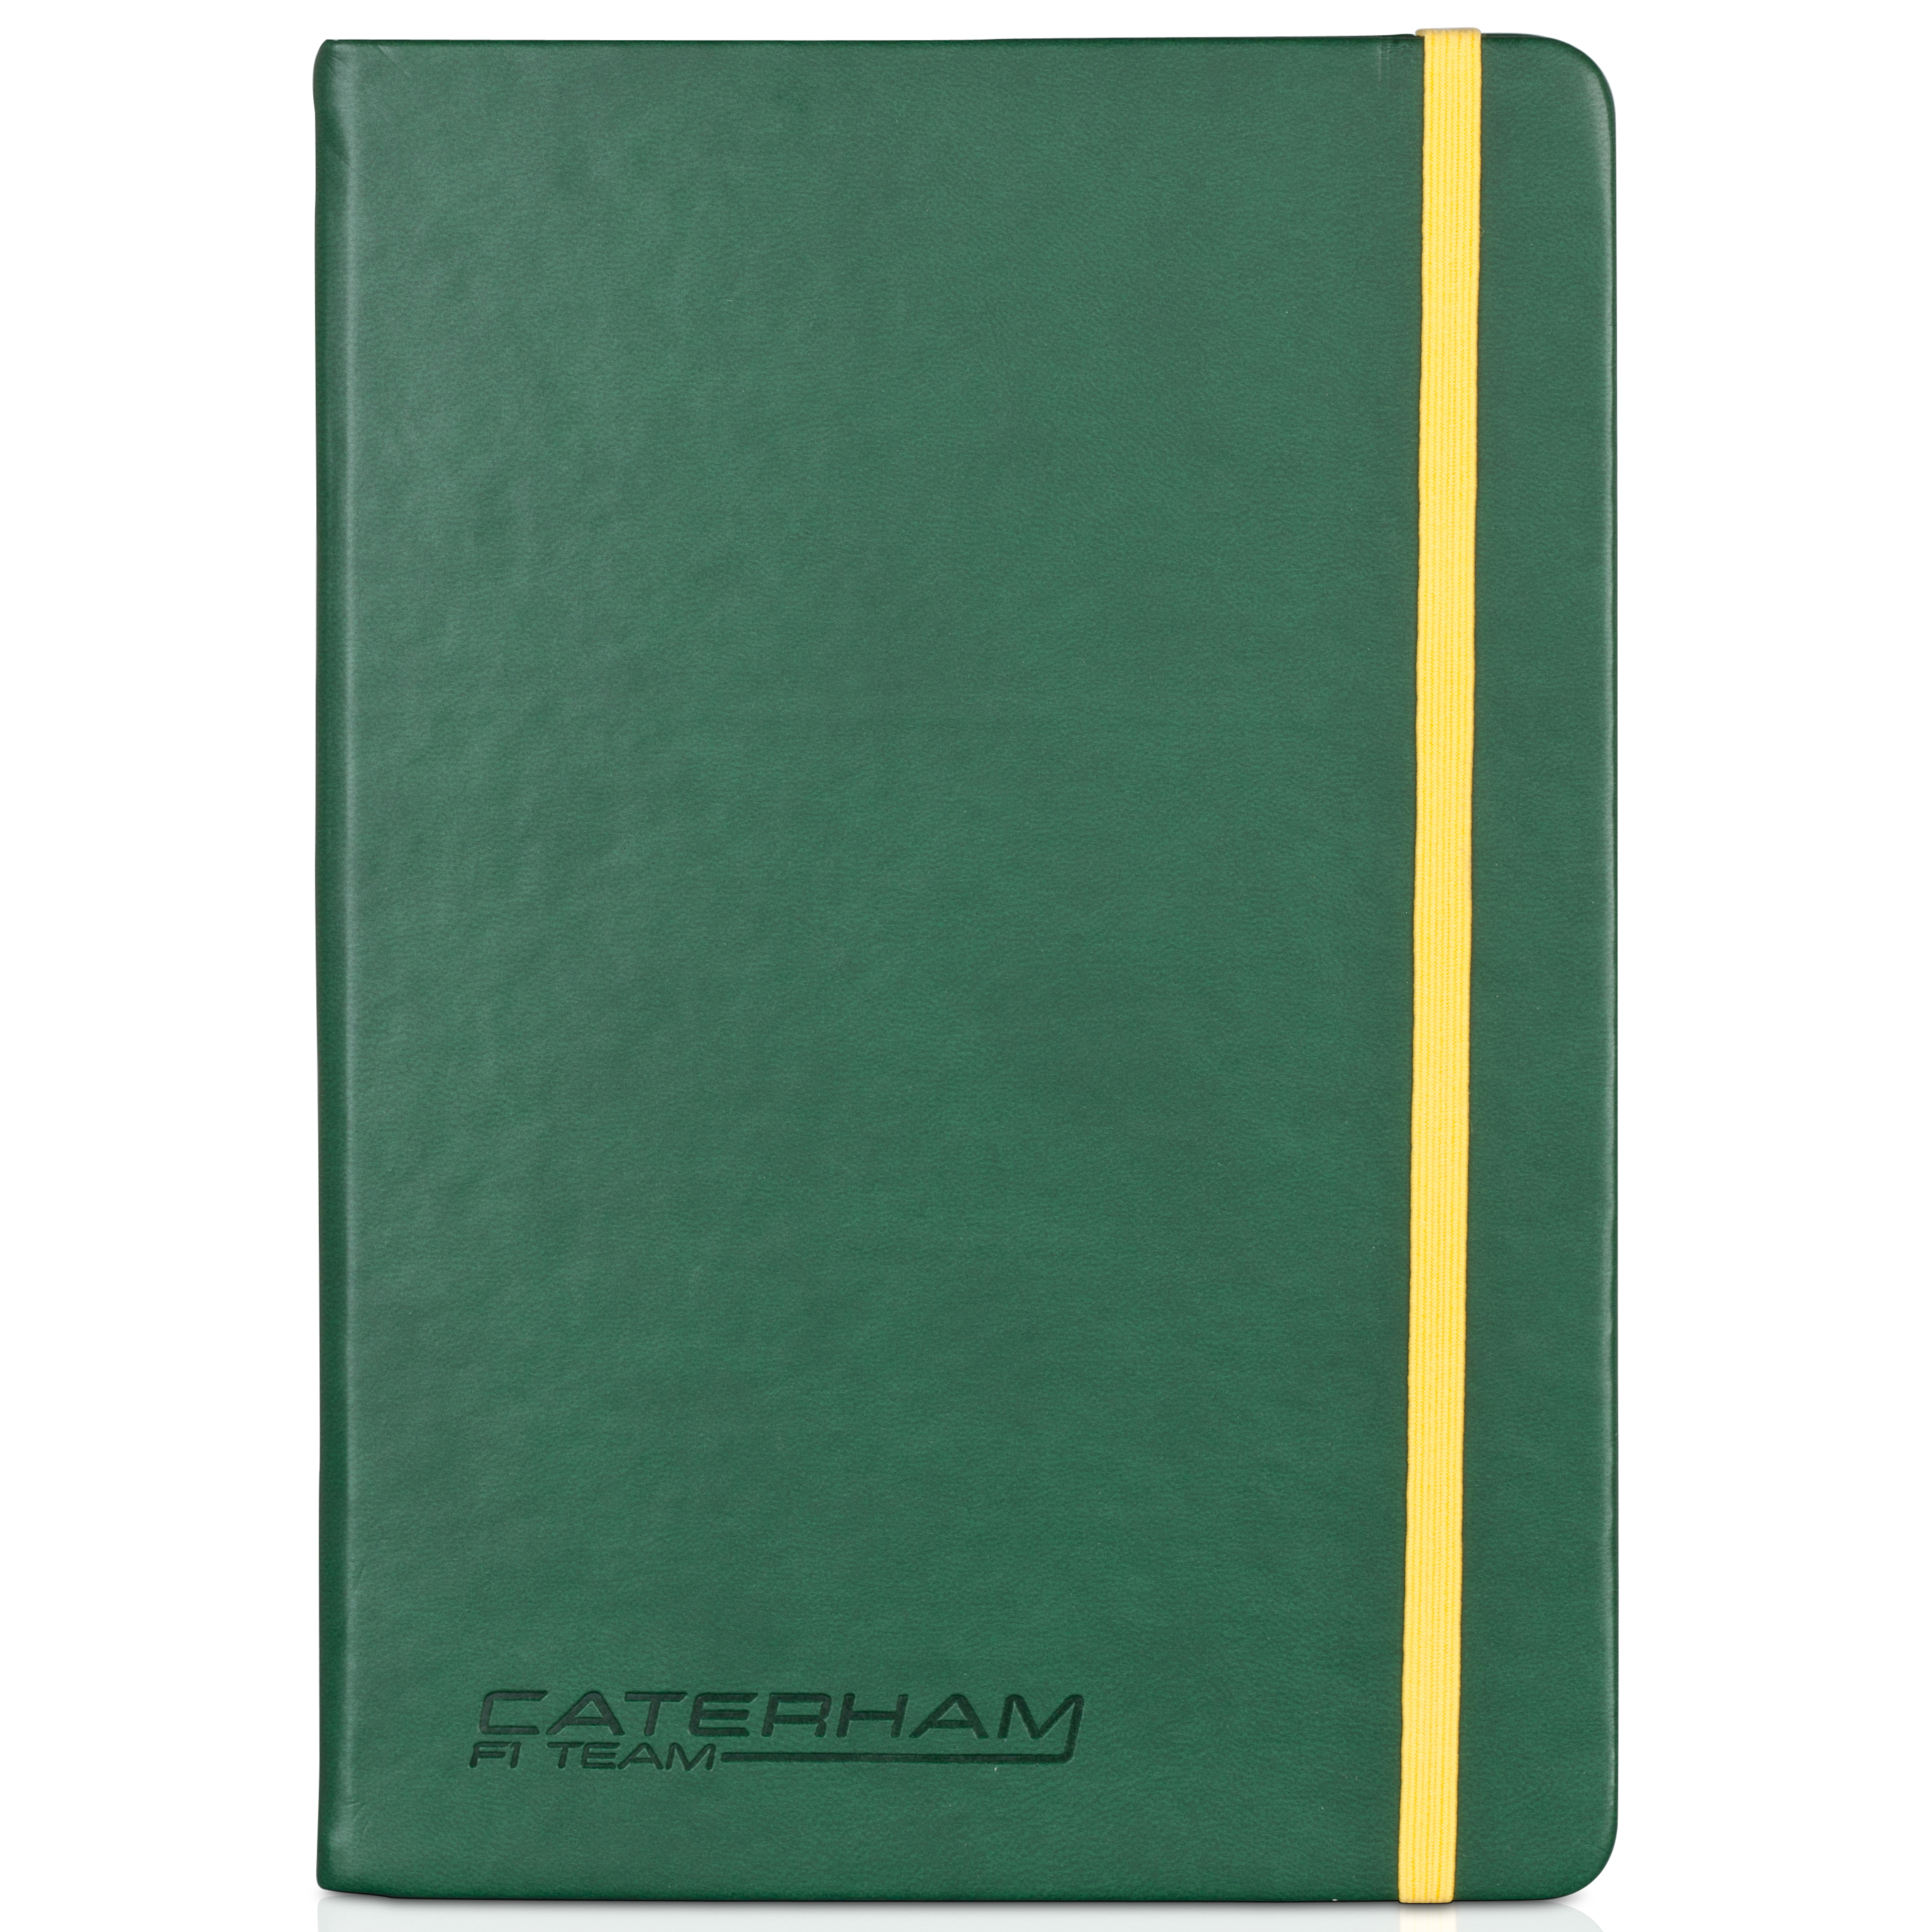 Caterham F1 Team Notebook